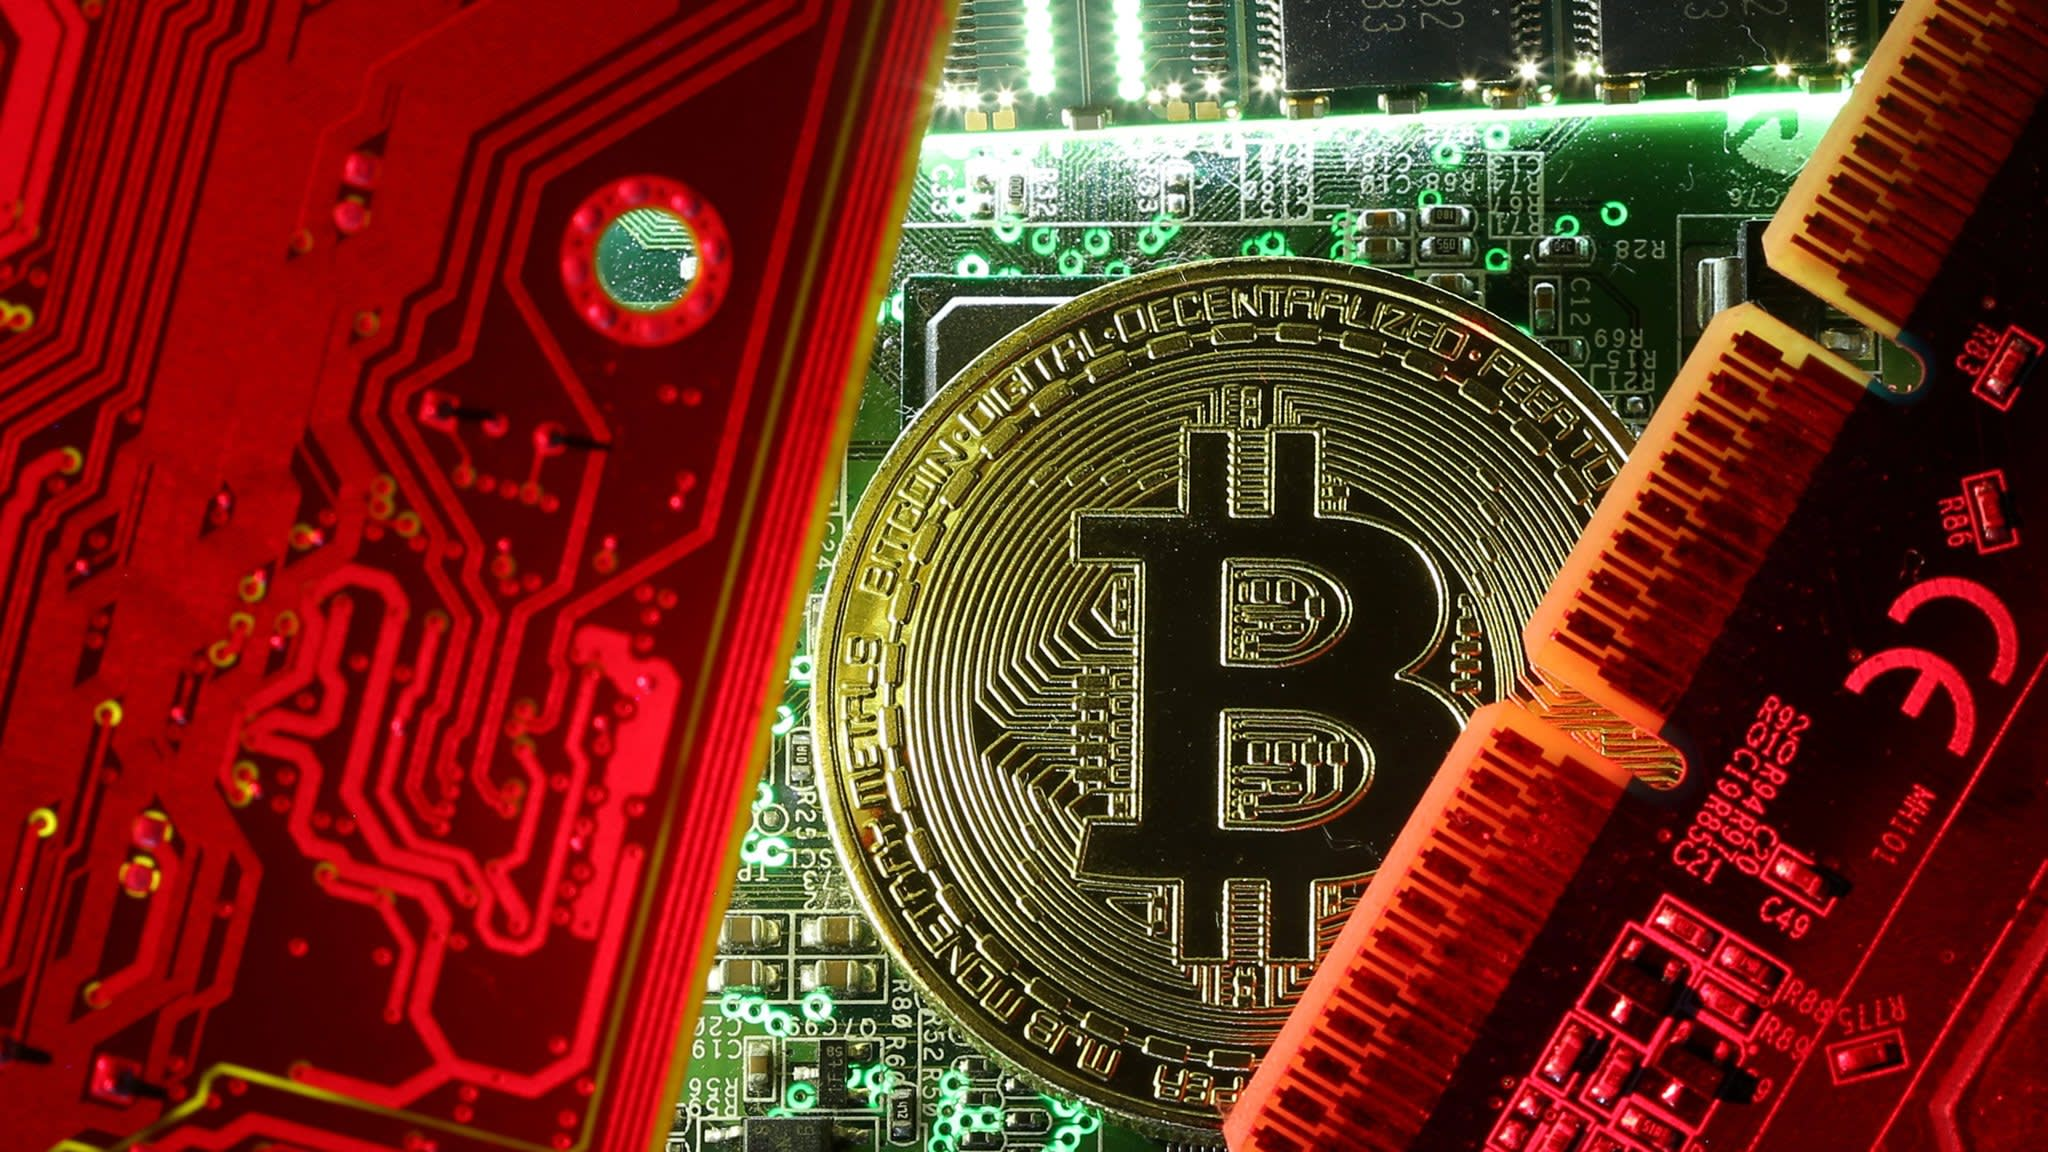 Bitcoin exchange in banking tie-up with Barclays - Financial Times Bitcoin exchange in banking tie-up with Barclays - 웹